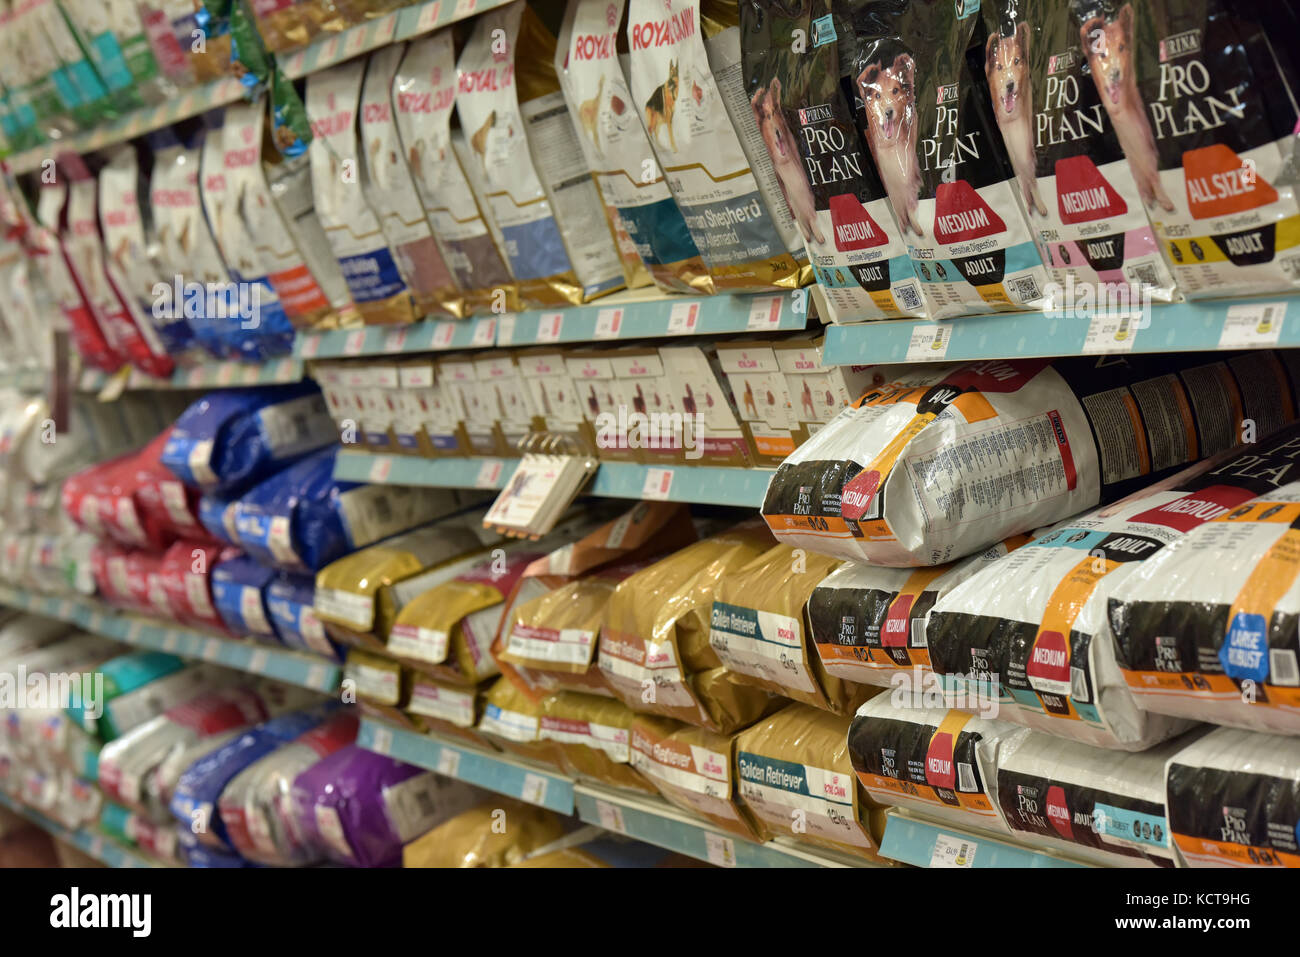 a variety of different dog foods and feeds in large bags on shelves at a large pet care store or shop retailing - Stock Image